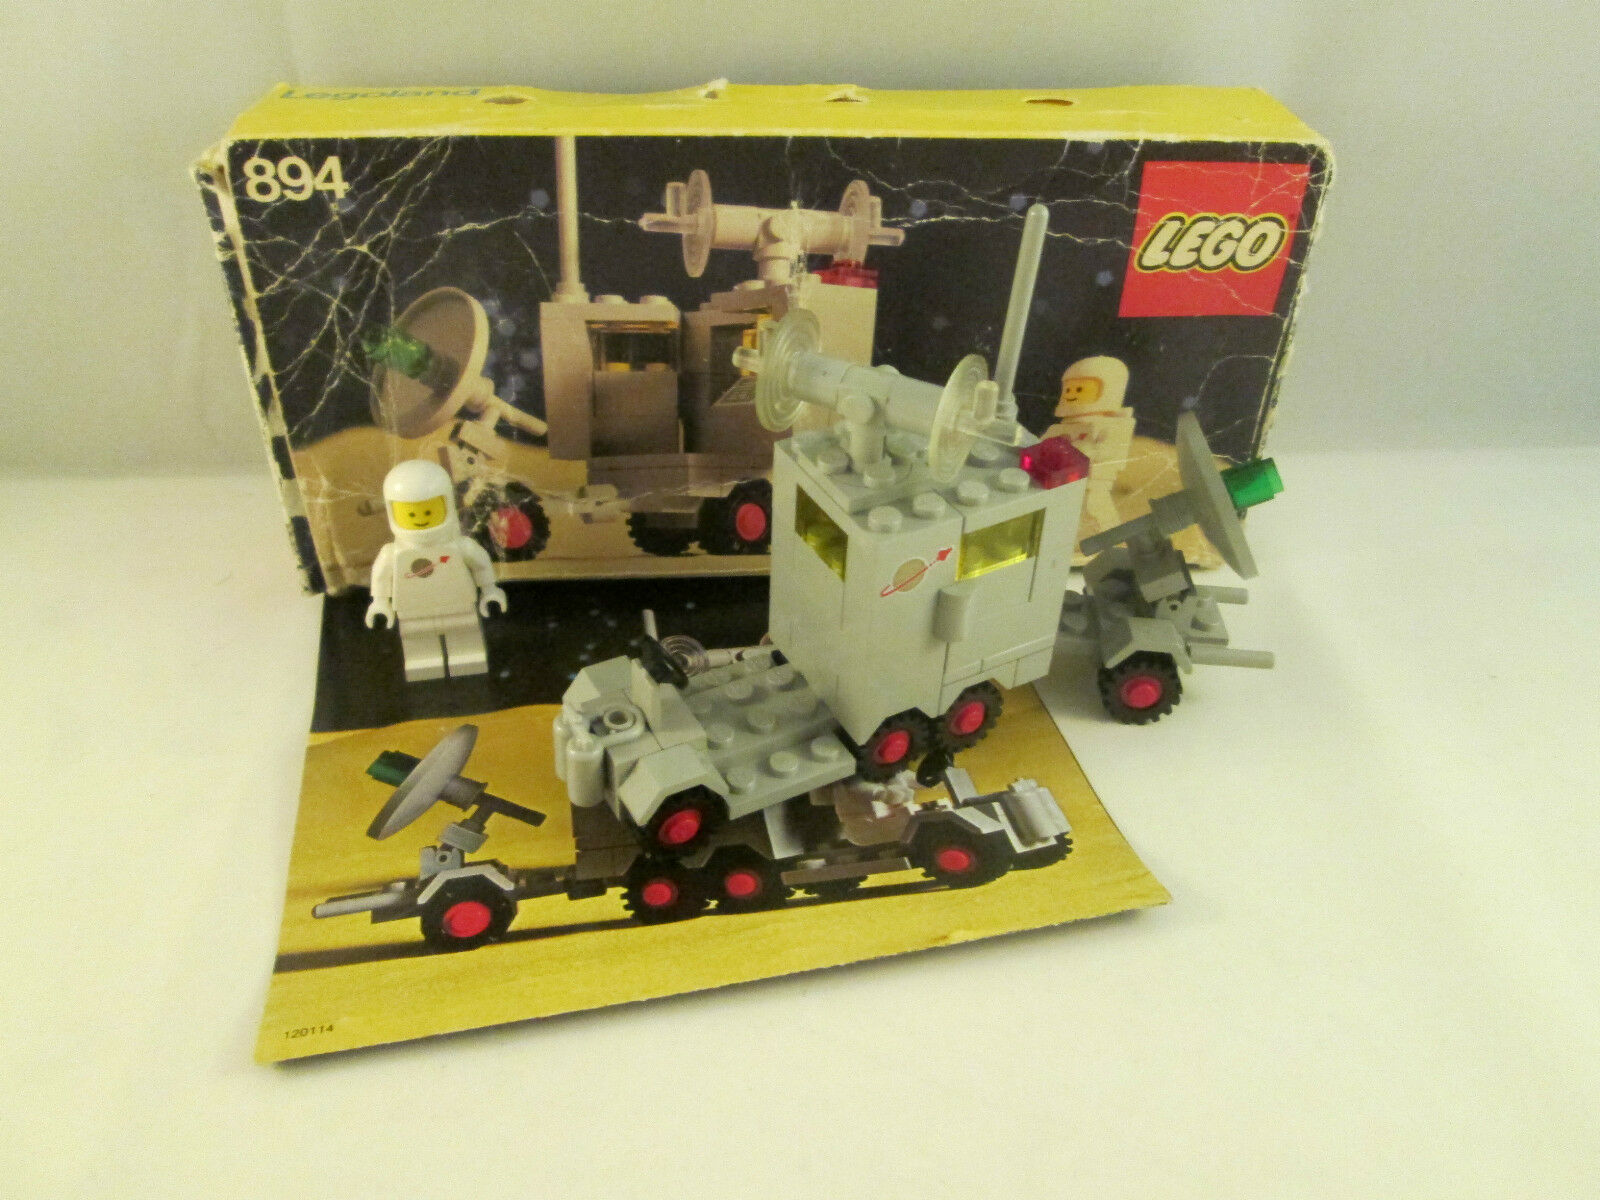 Lego Classic Space - 894 Mobile Ground Tracking Station